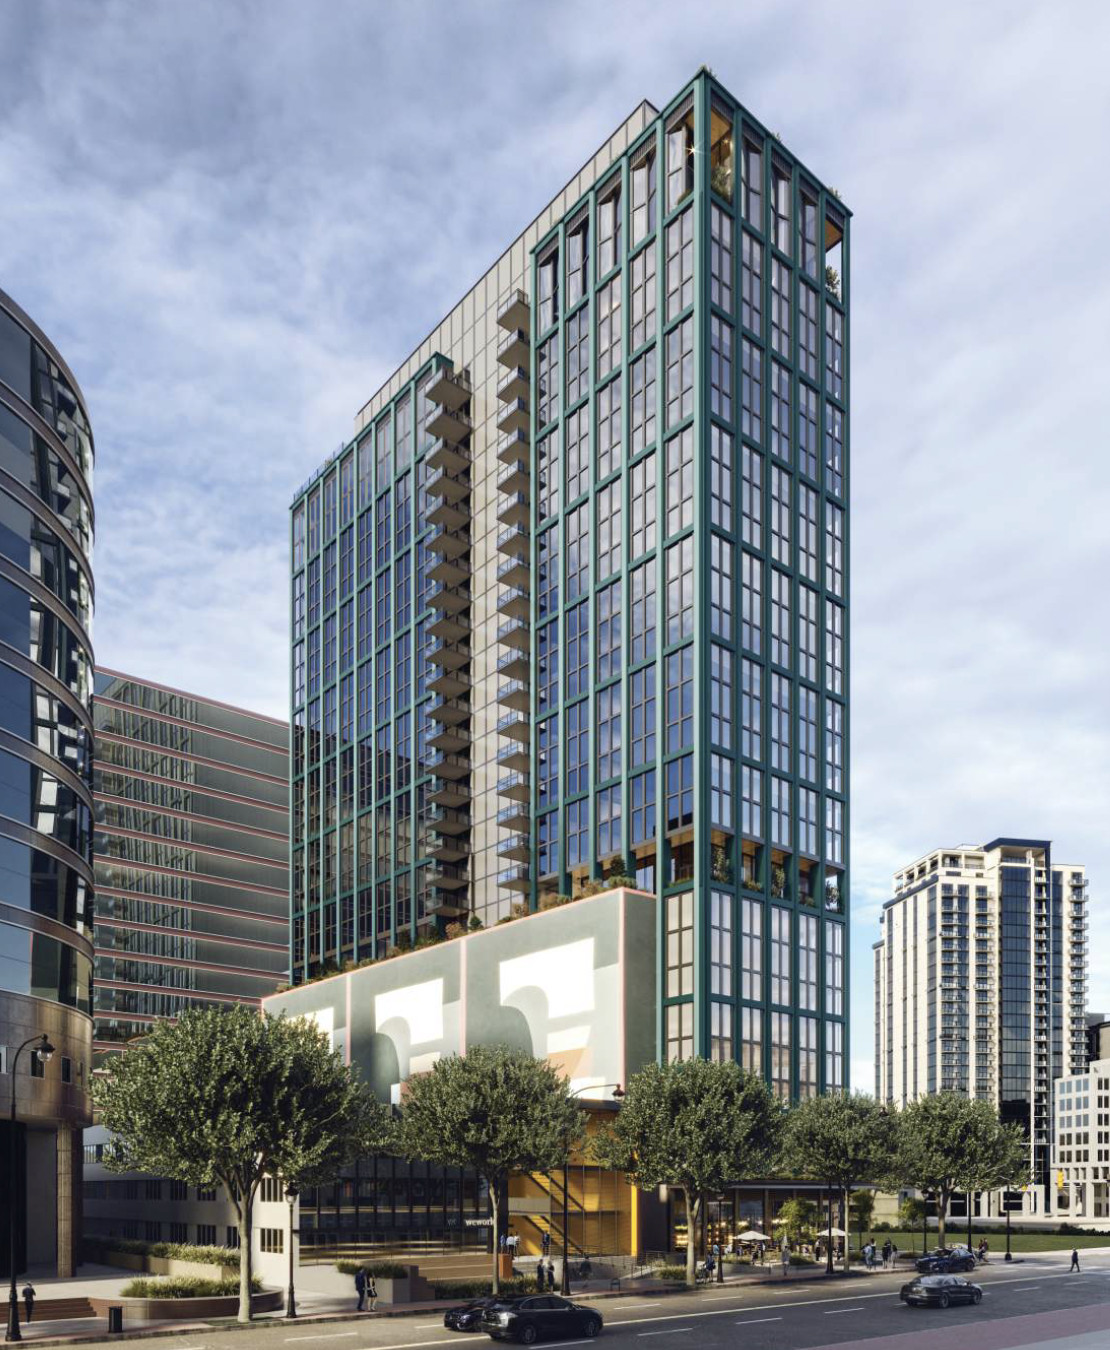 Another rendering shows a different angle of the high-rise development.